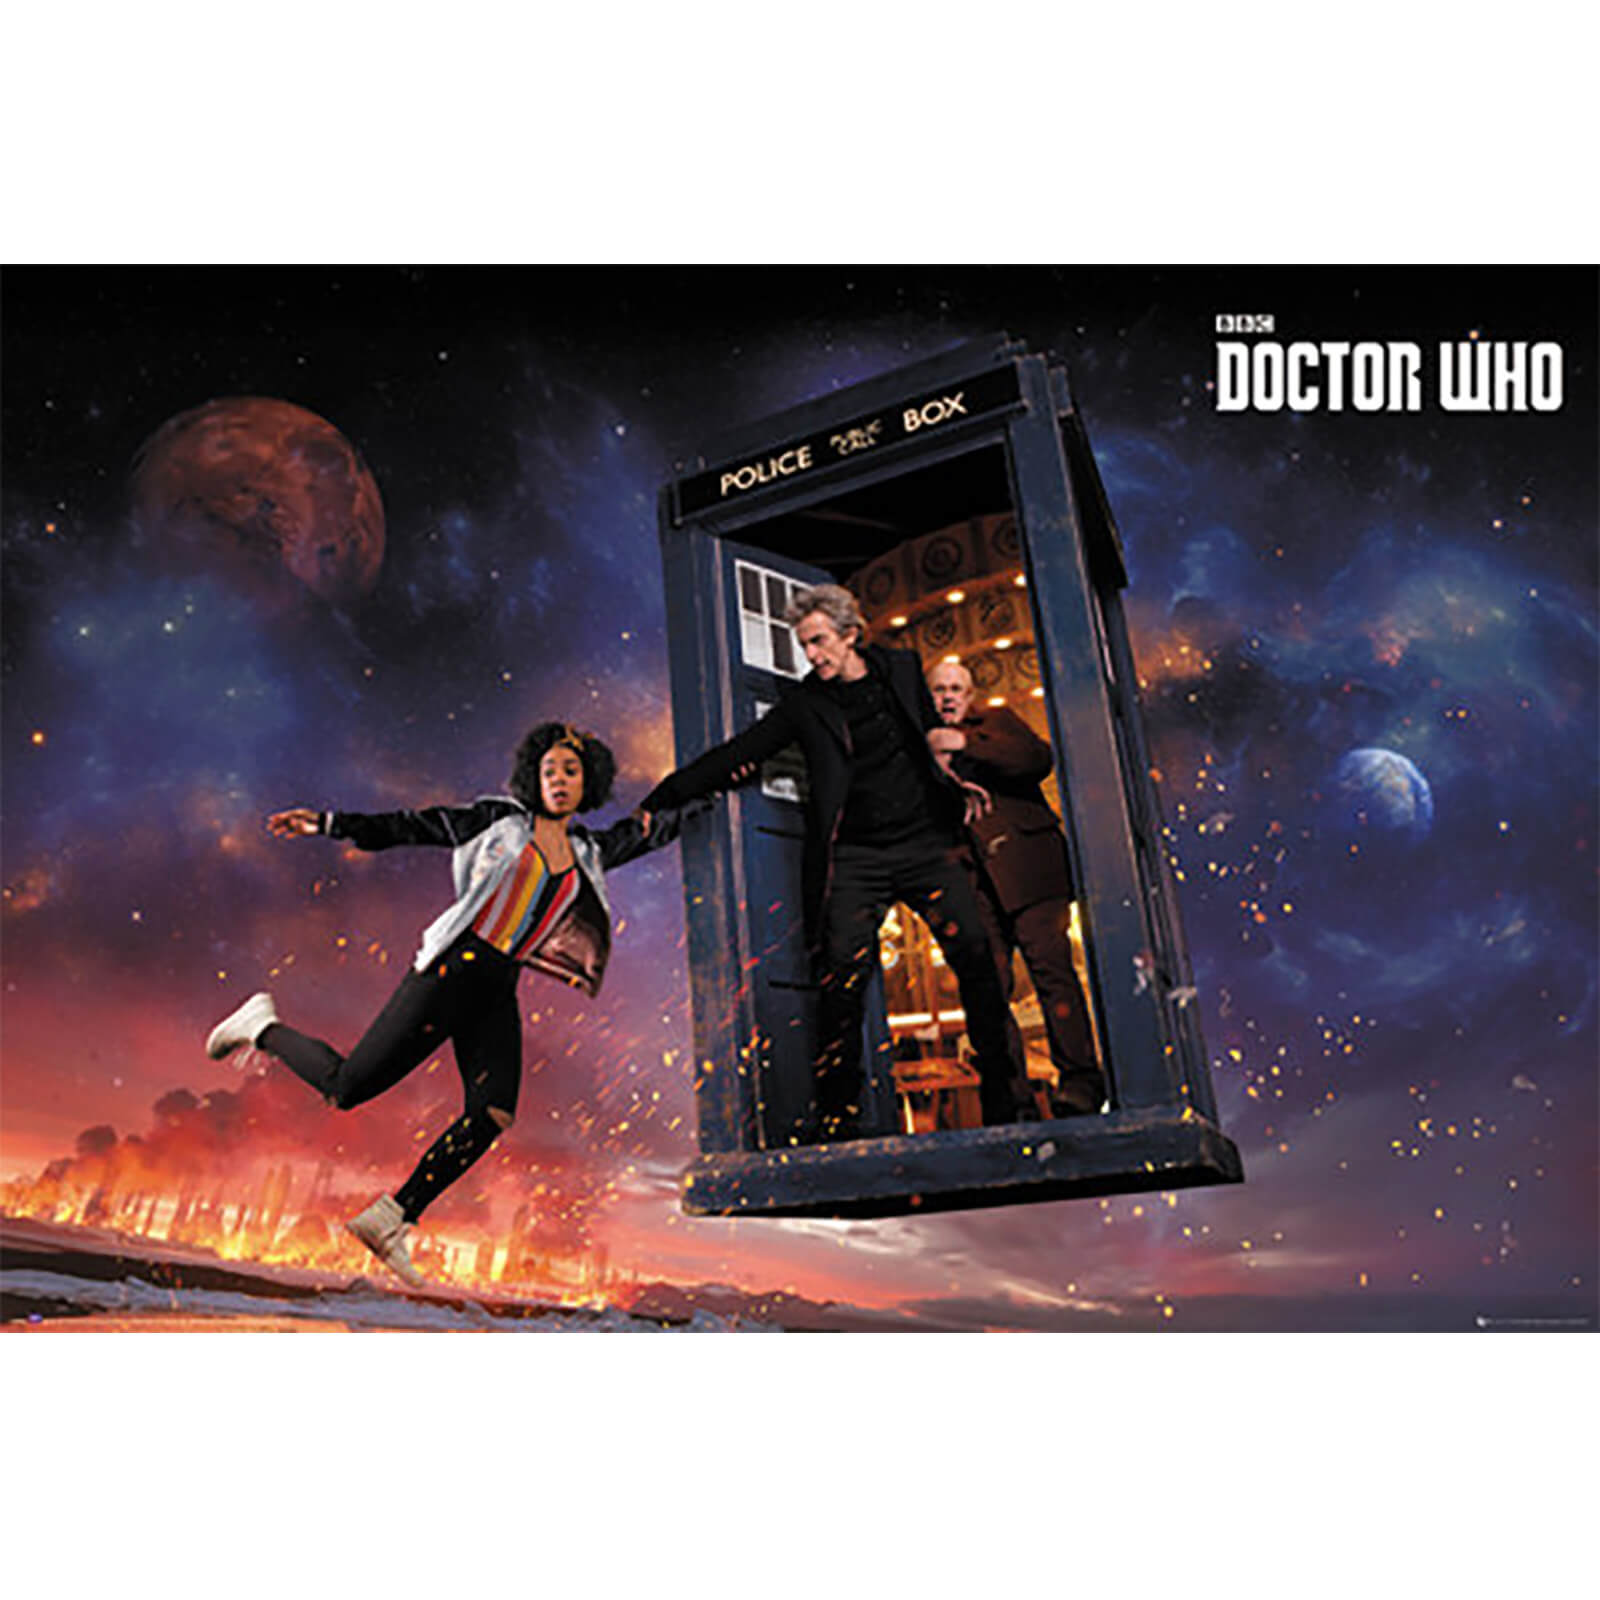 Doctor Who: Season 10 Iconic - 61 x 91.5cm Maxi Poster